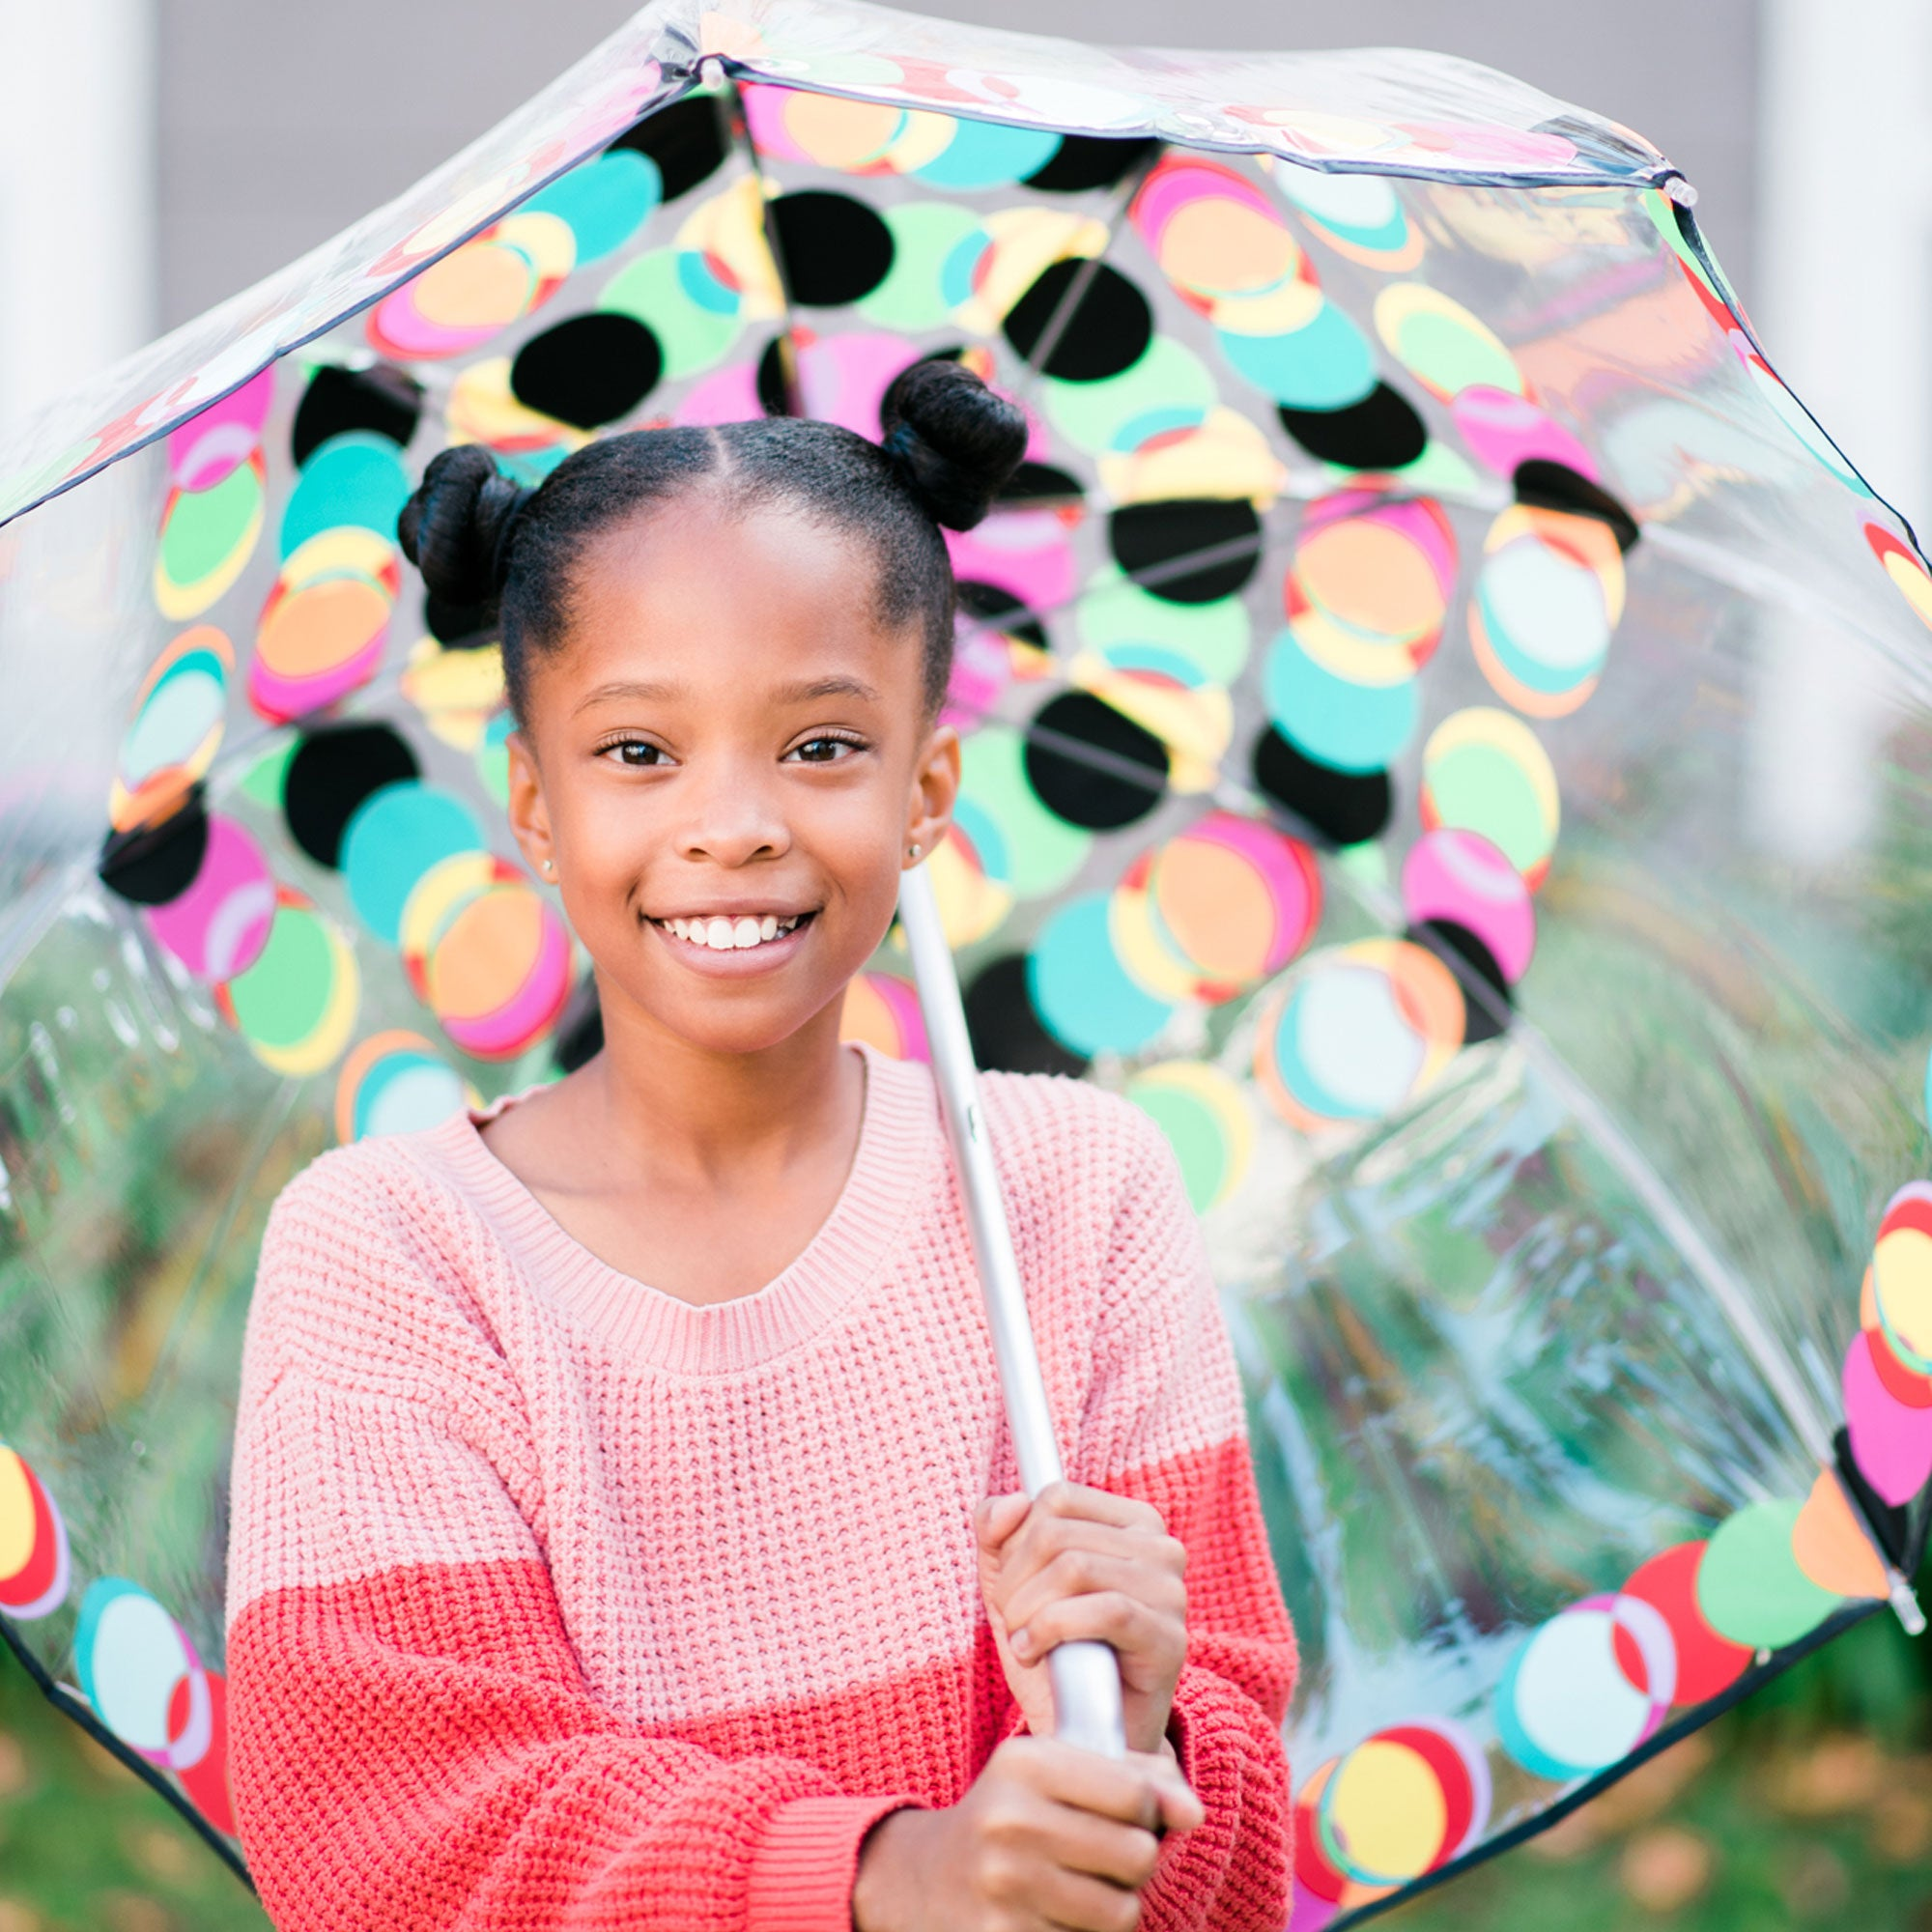 Child female model holding circle mania bubble umbrella with a big smile on her face